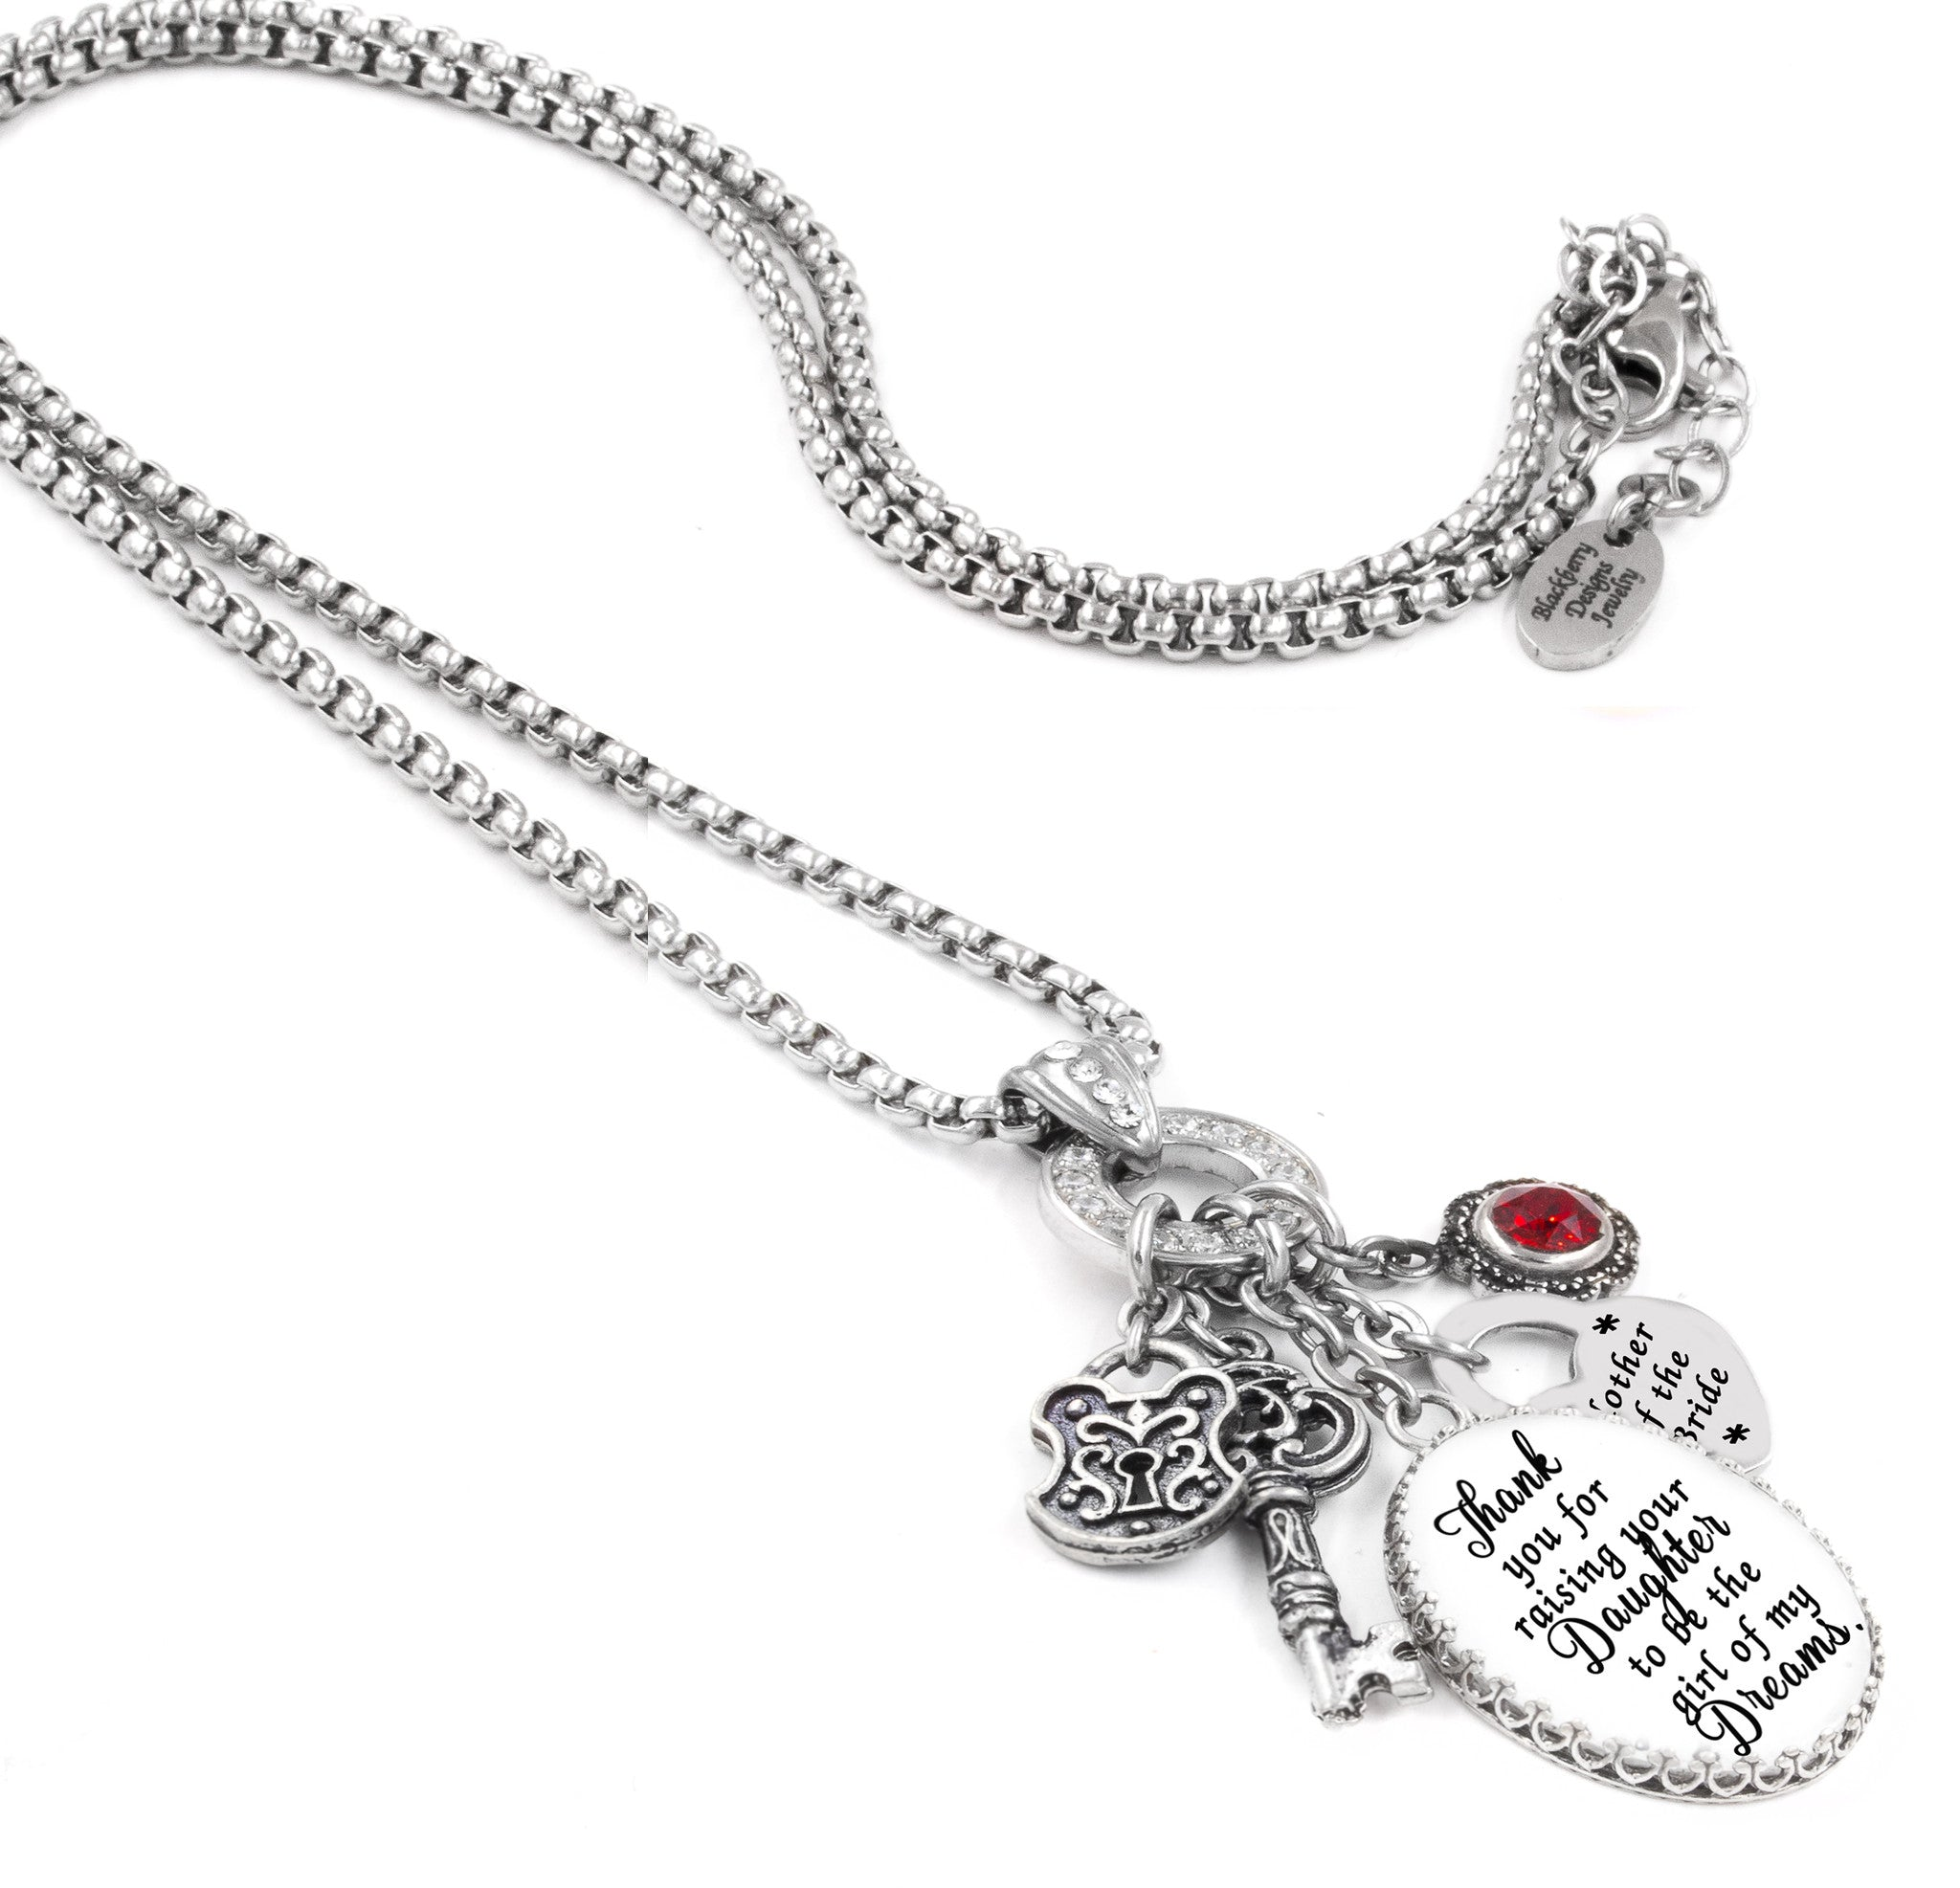 Mother Of The Bride Jewelry: Mother Of The Bride Necklace, Mother In Law Necklace